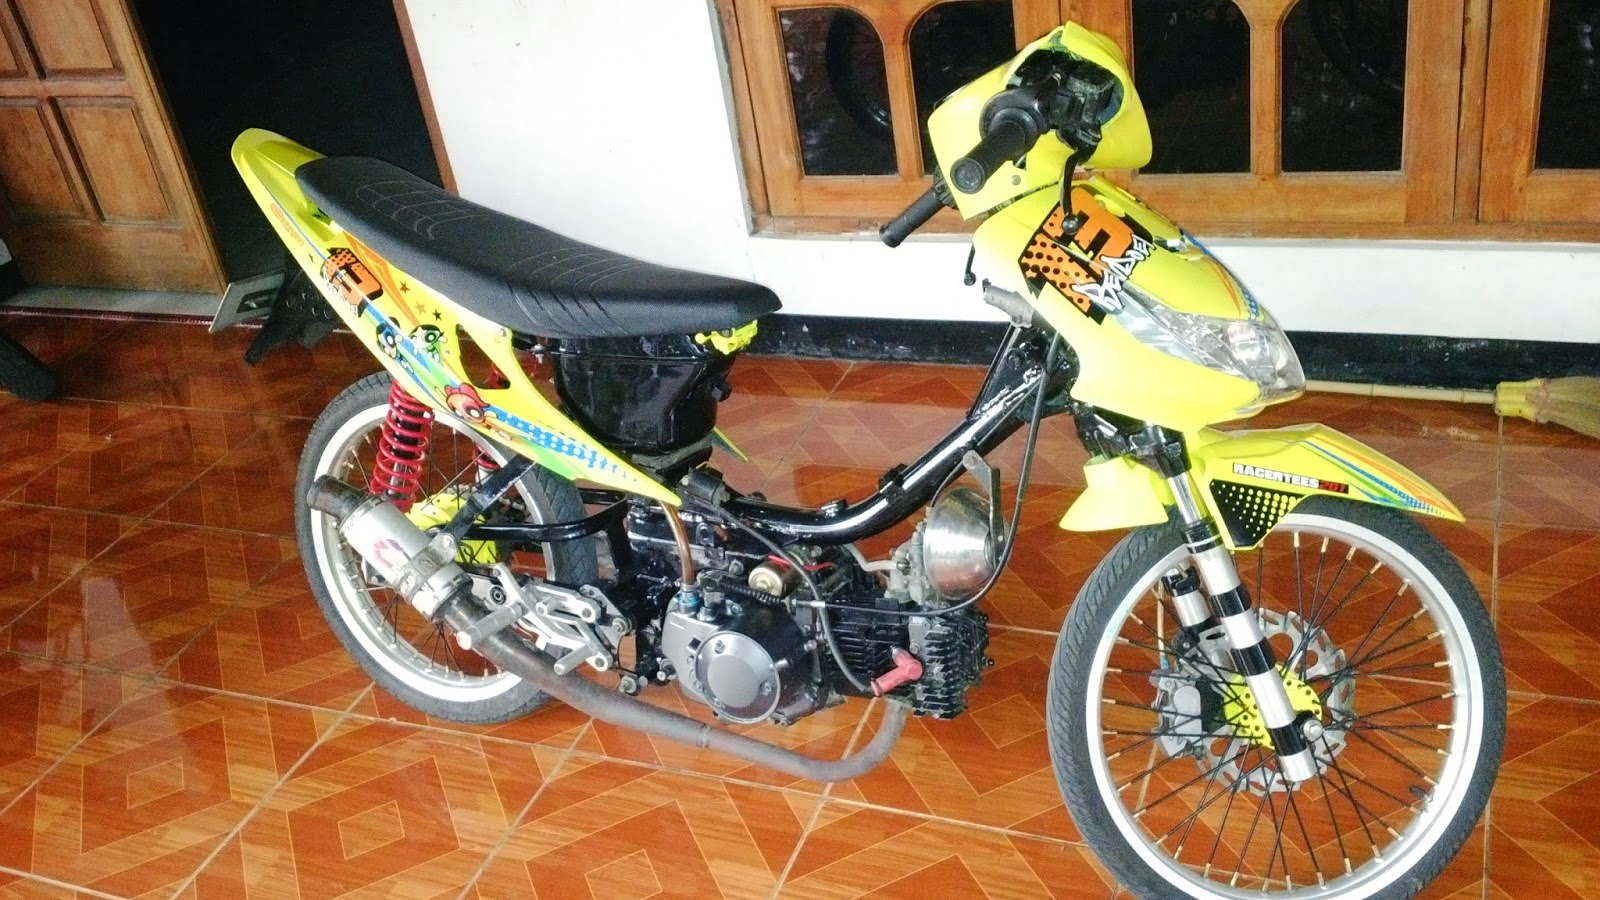 Revo Fit Modifikasi Drag Honda Revo Modifikasi Drag